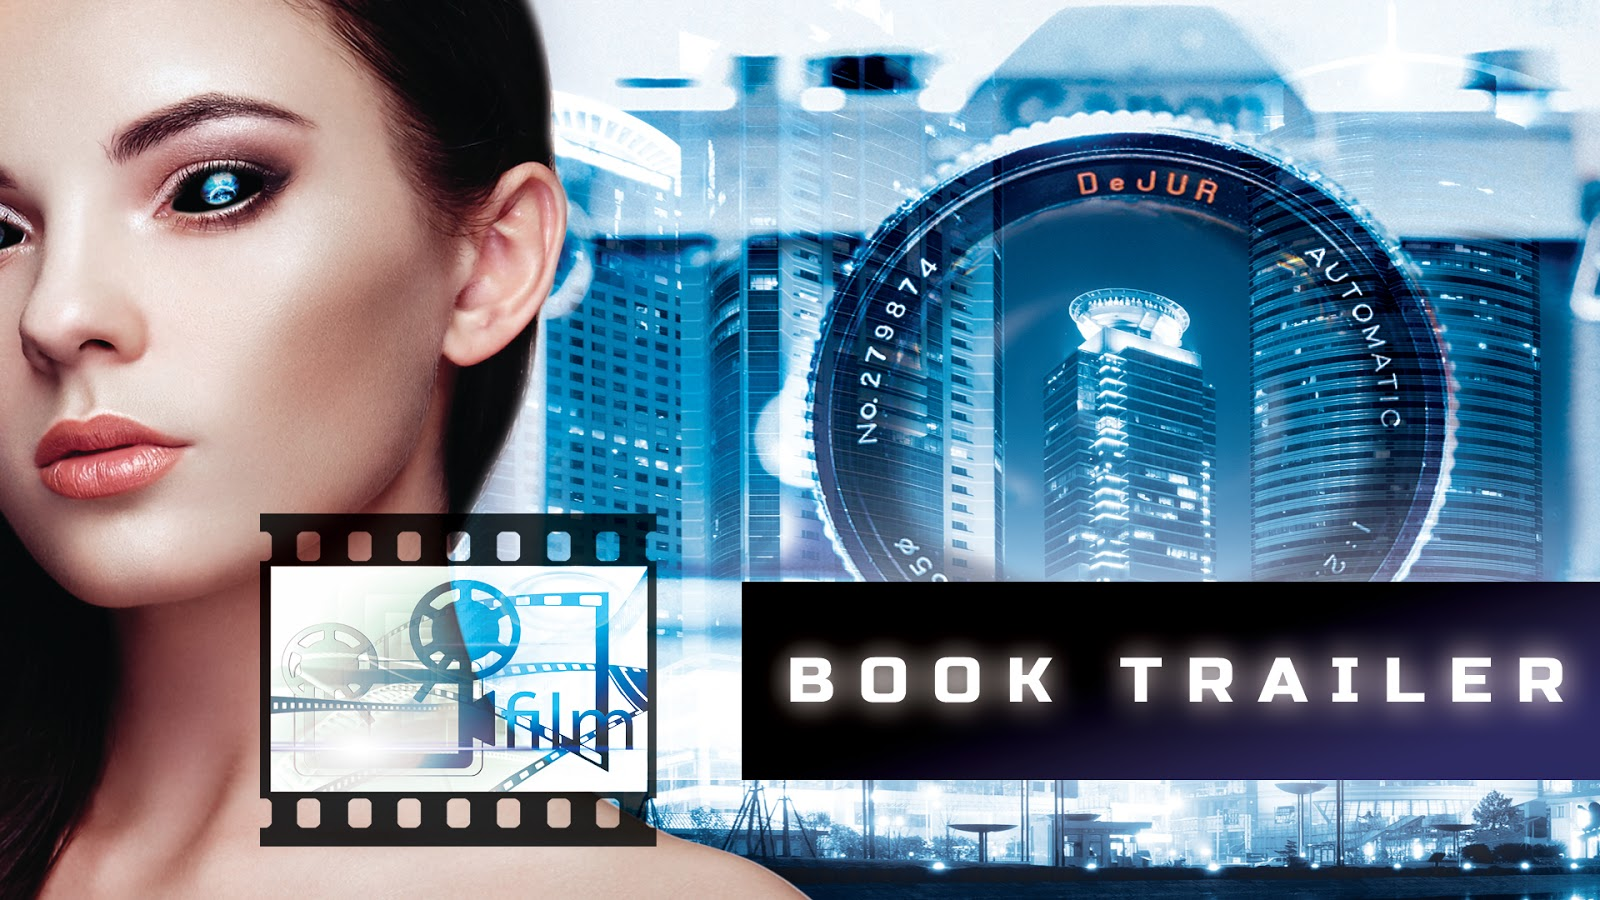 Visualartzi book trailer, how to book trailer, girl cool eye effects photoshop, how to create stunning book trailers, video editing book trailer, picture manipulation photoshop, book trailer photoshop, free stock images, and videos in 4k and 1080p